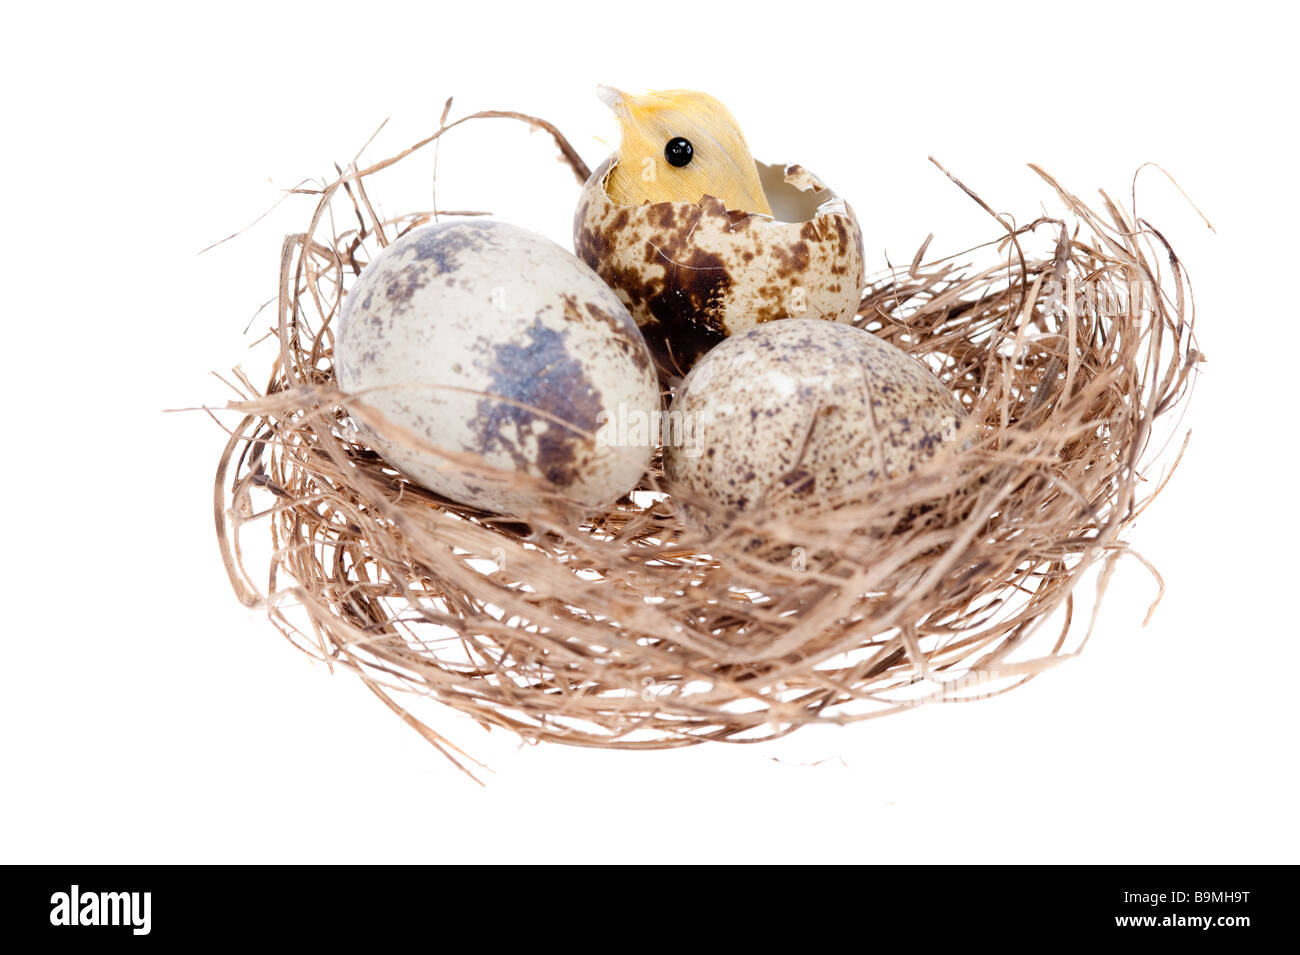 easter chick in nest isolated on a white background - Stock Image